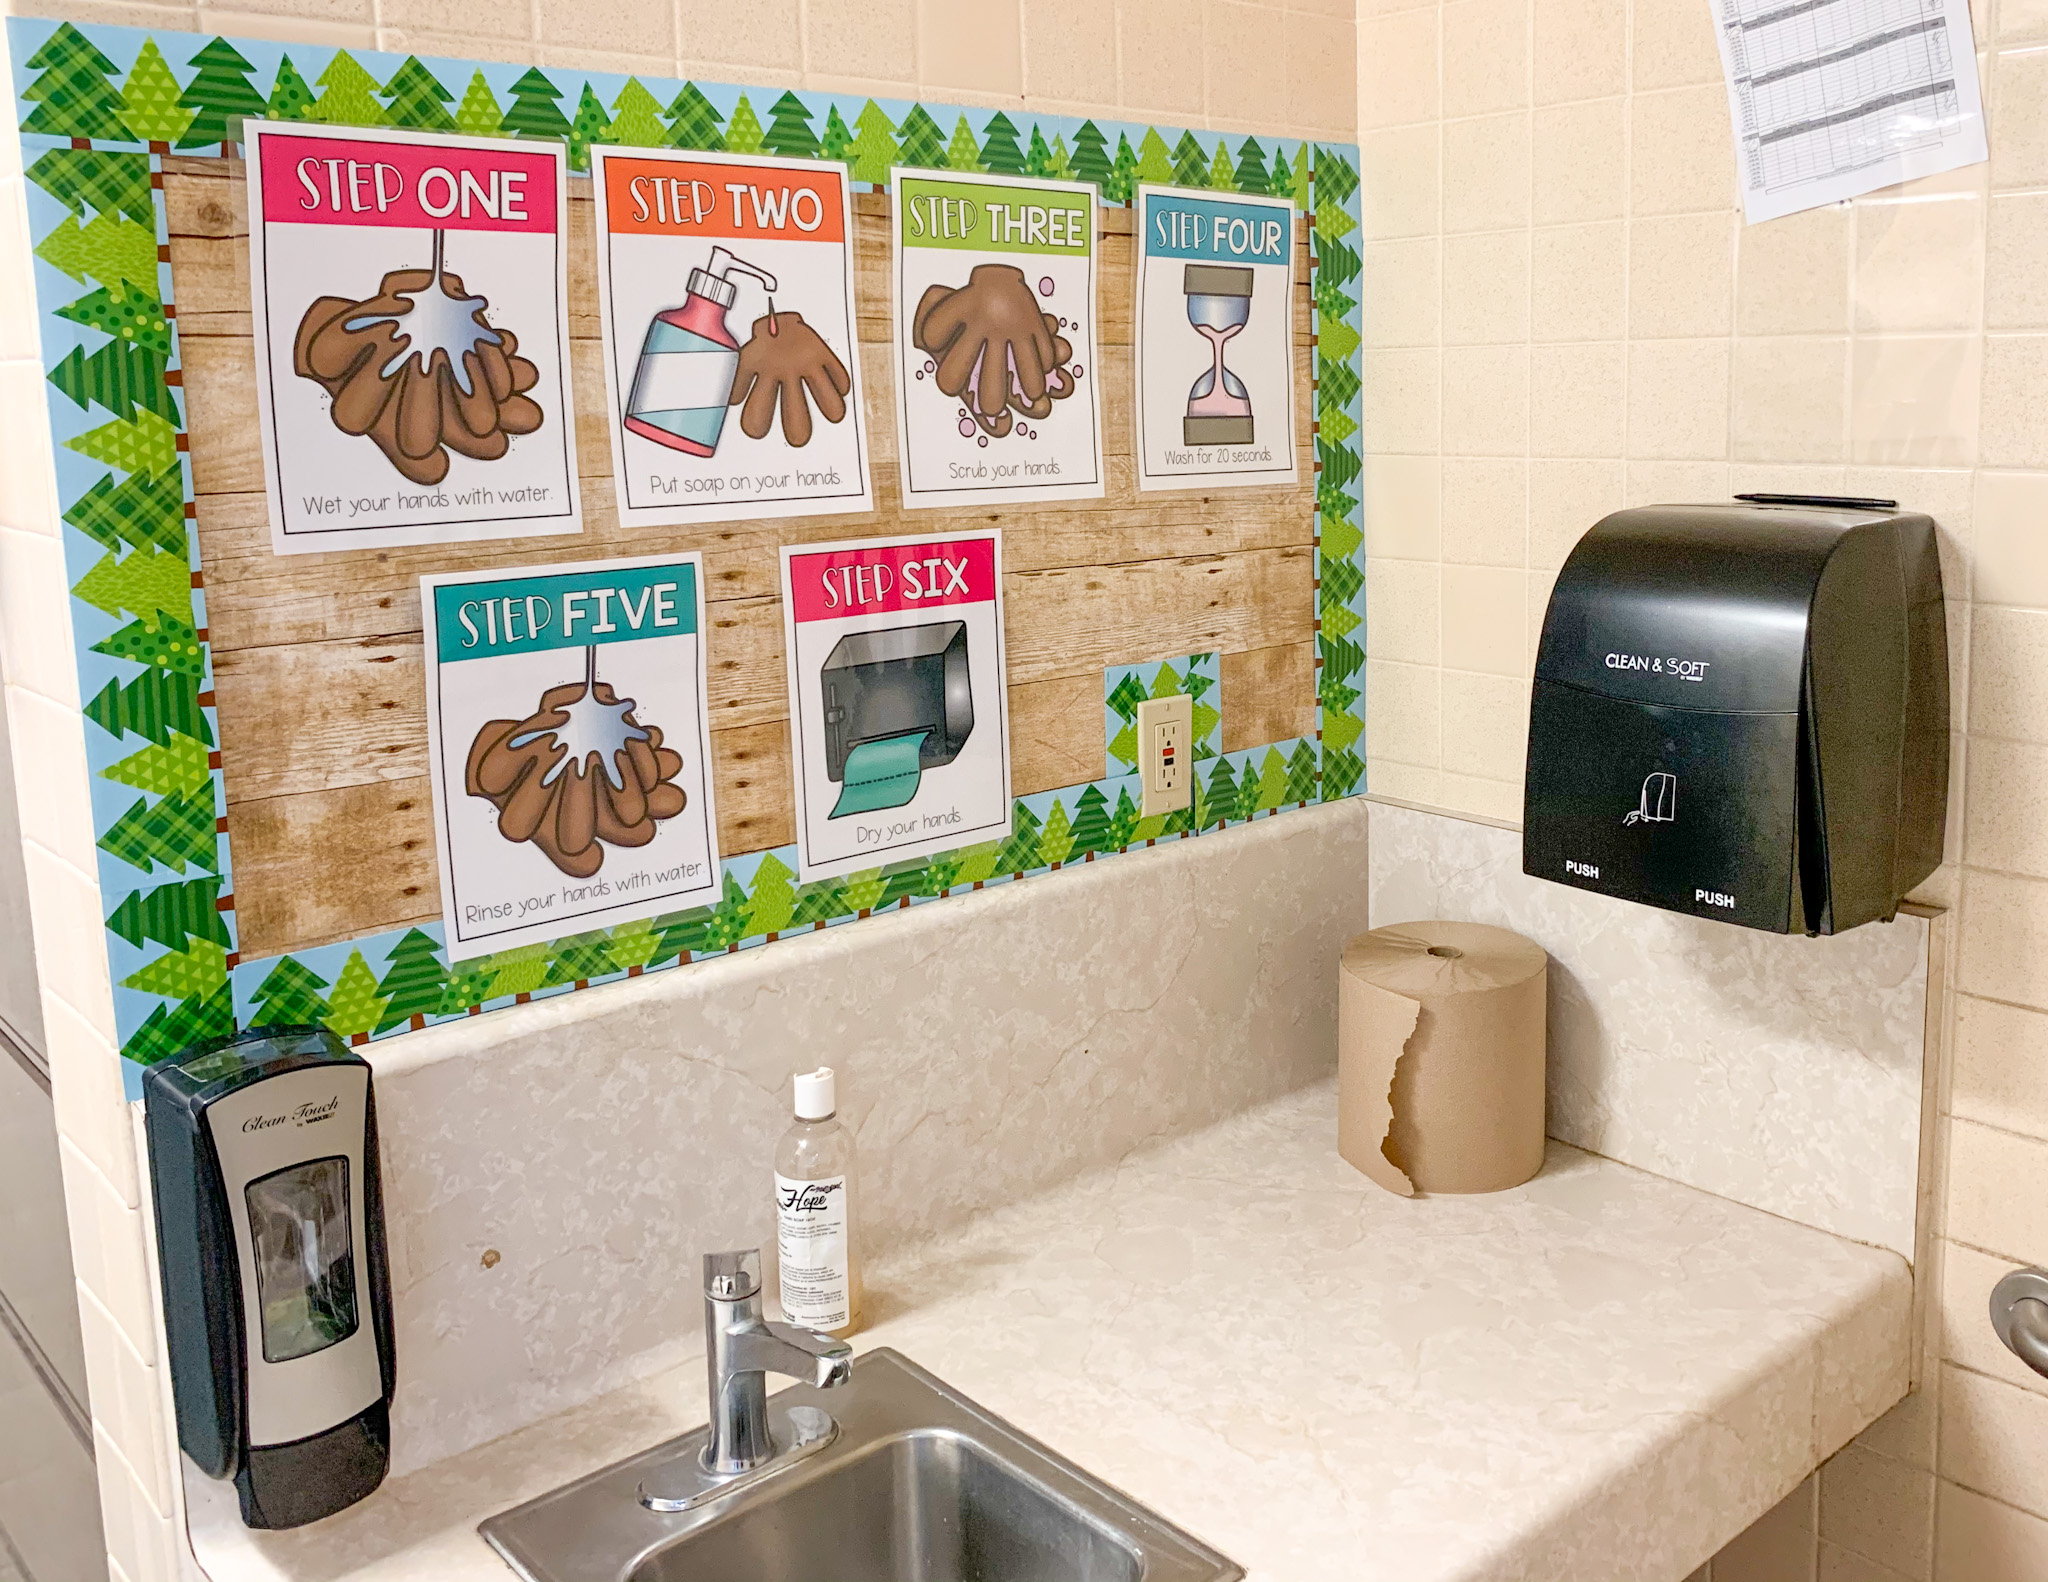 Here is one of the sinks in my classroom.